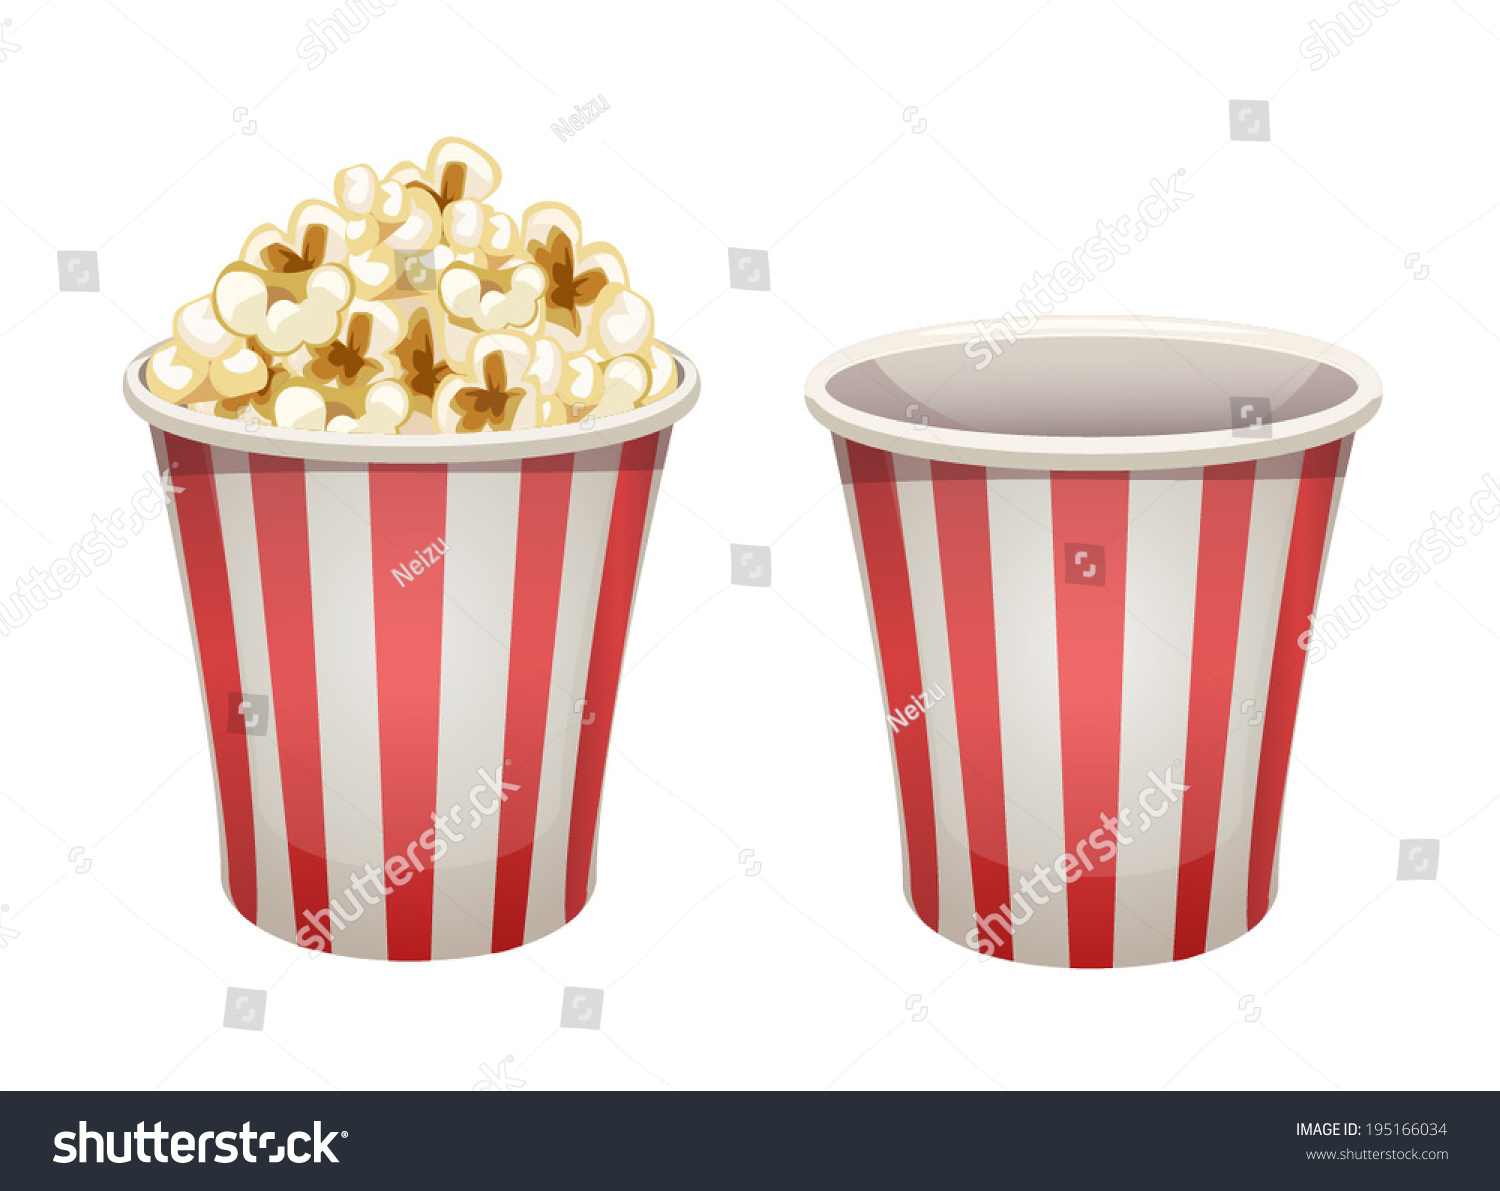 Worksheet Full And Empty vector popcorn bucket isolated full and empty 195166034 shutterstock